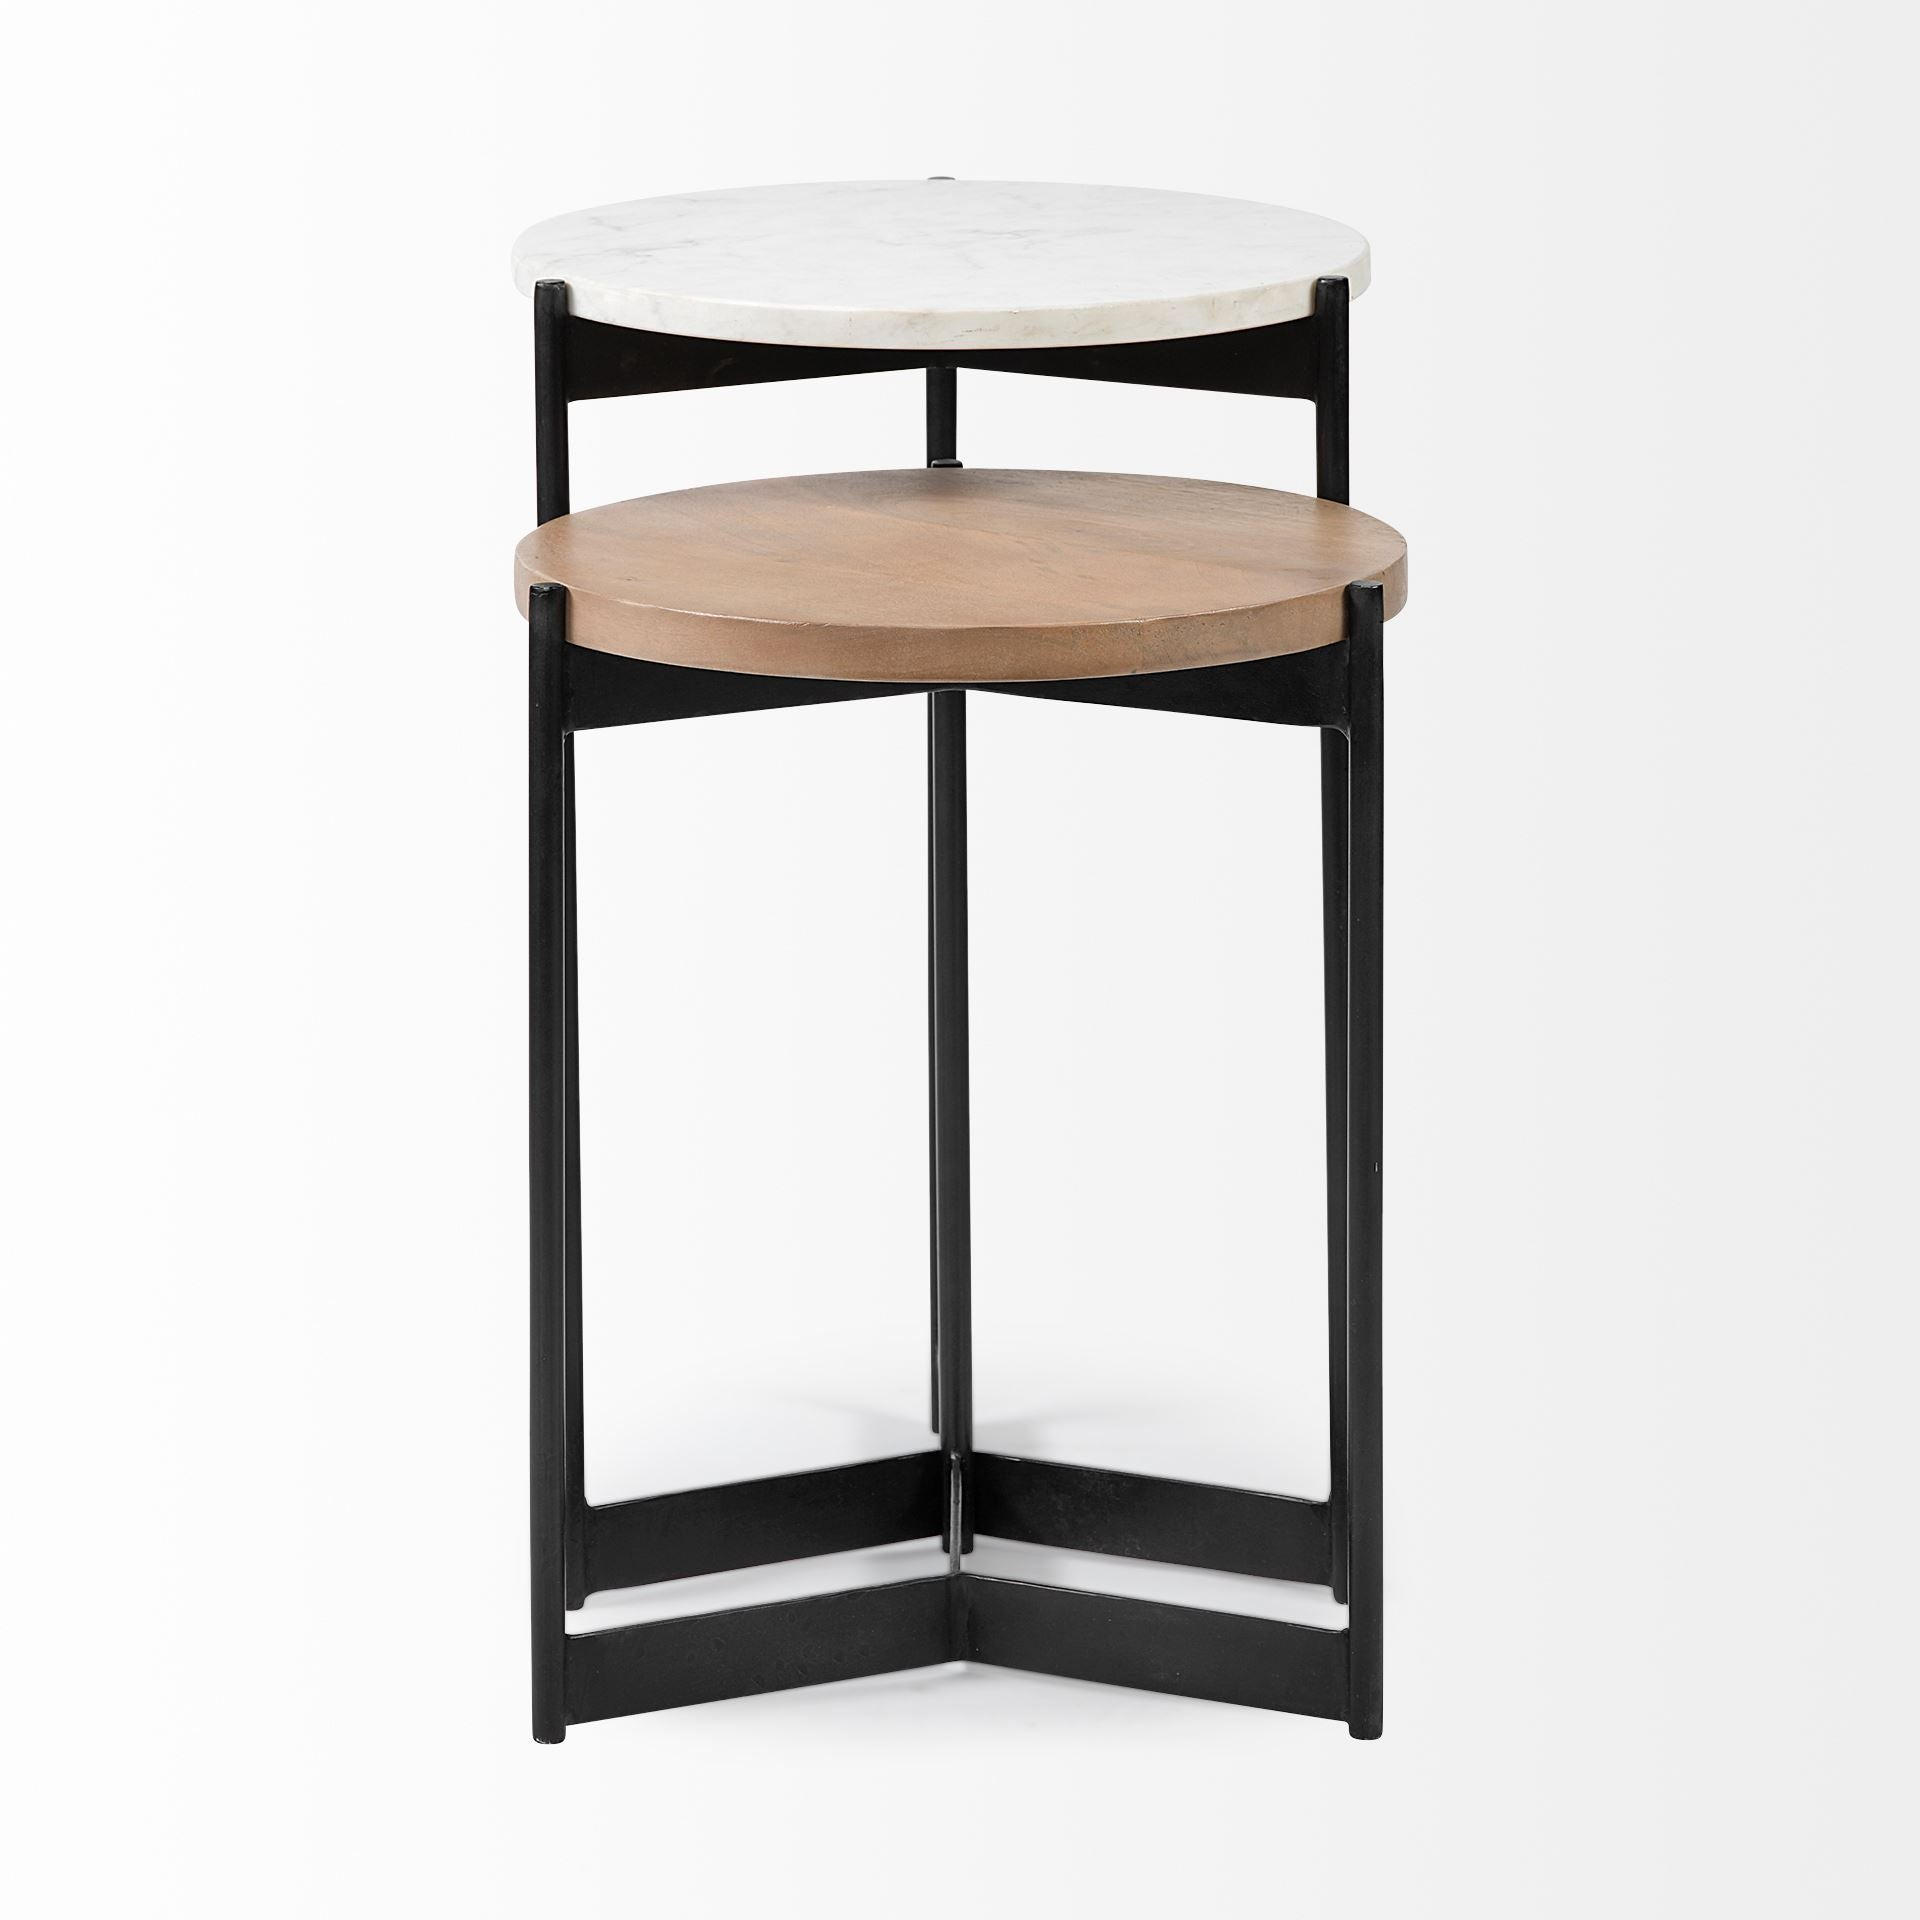 Meadow Nesting Tables - Marble and Wood